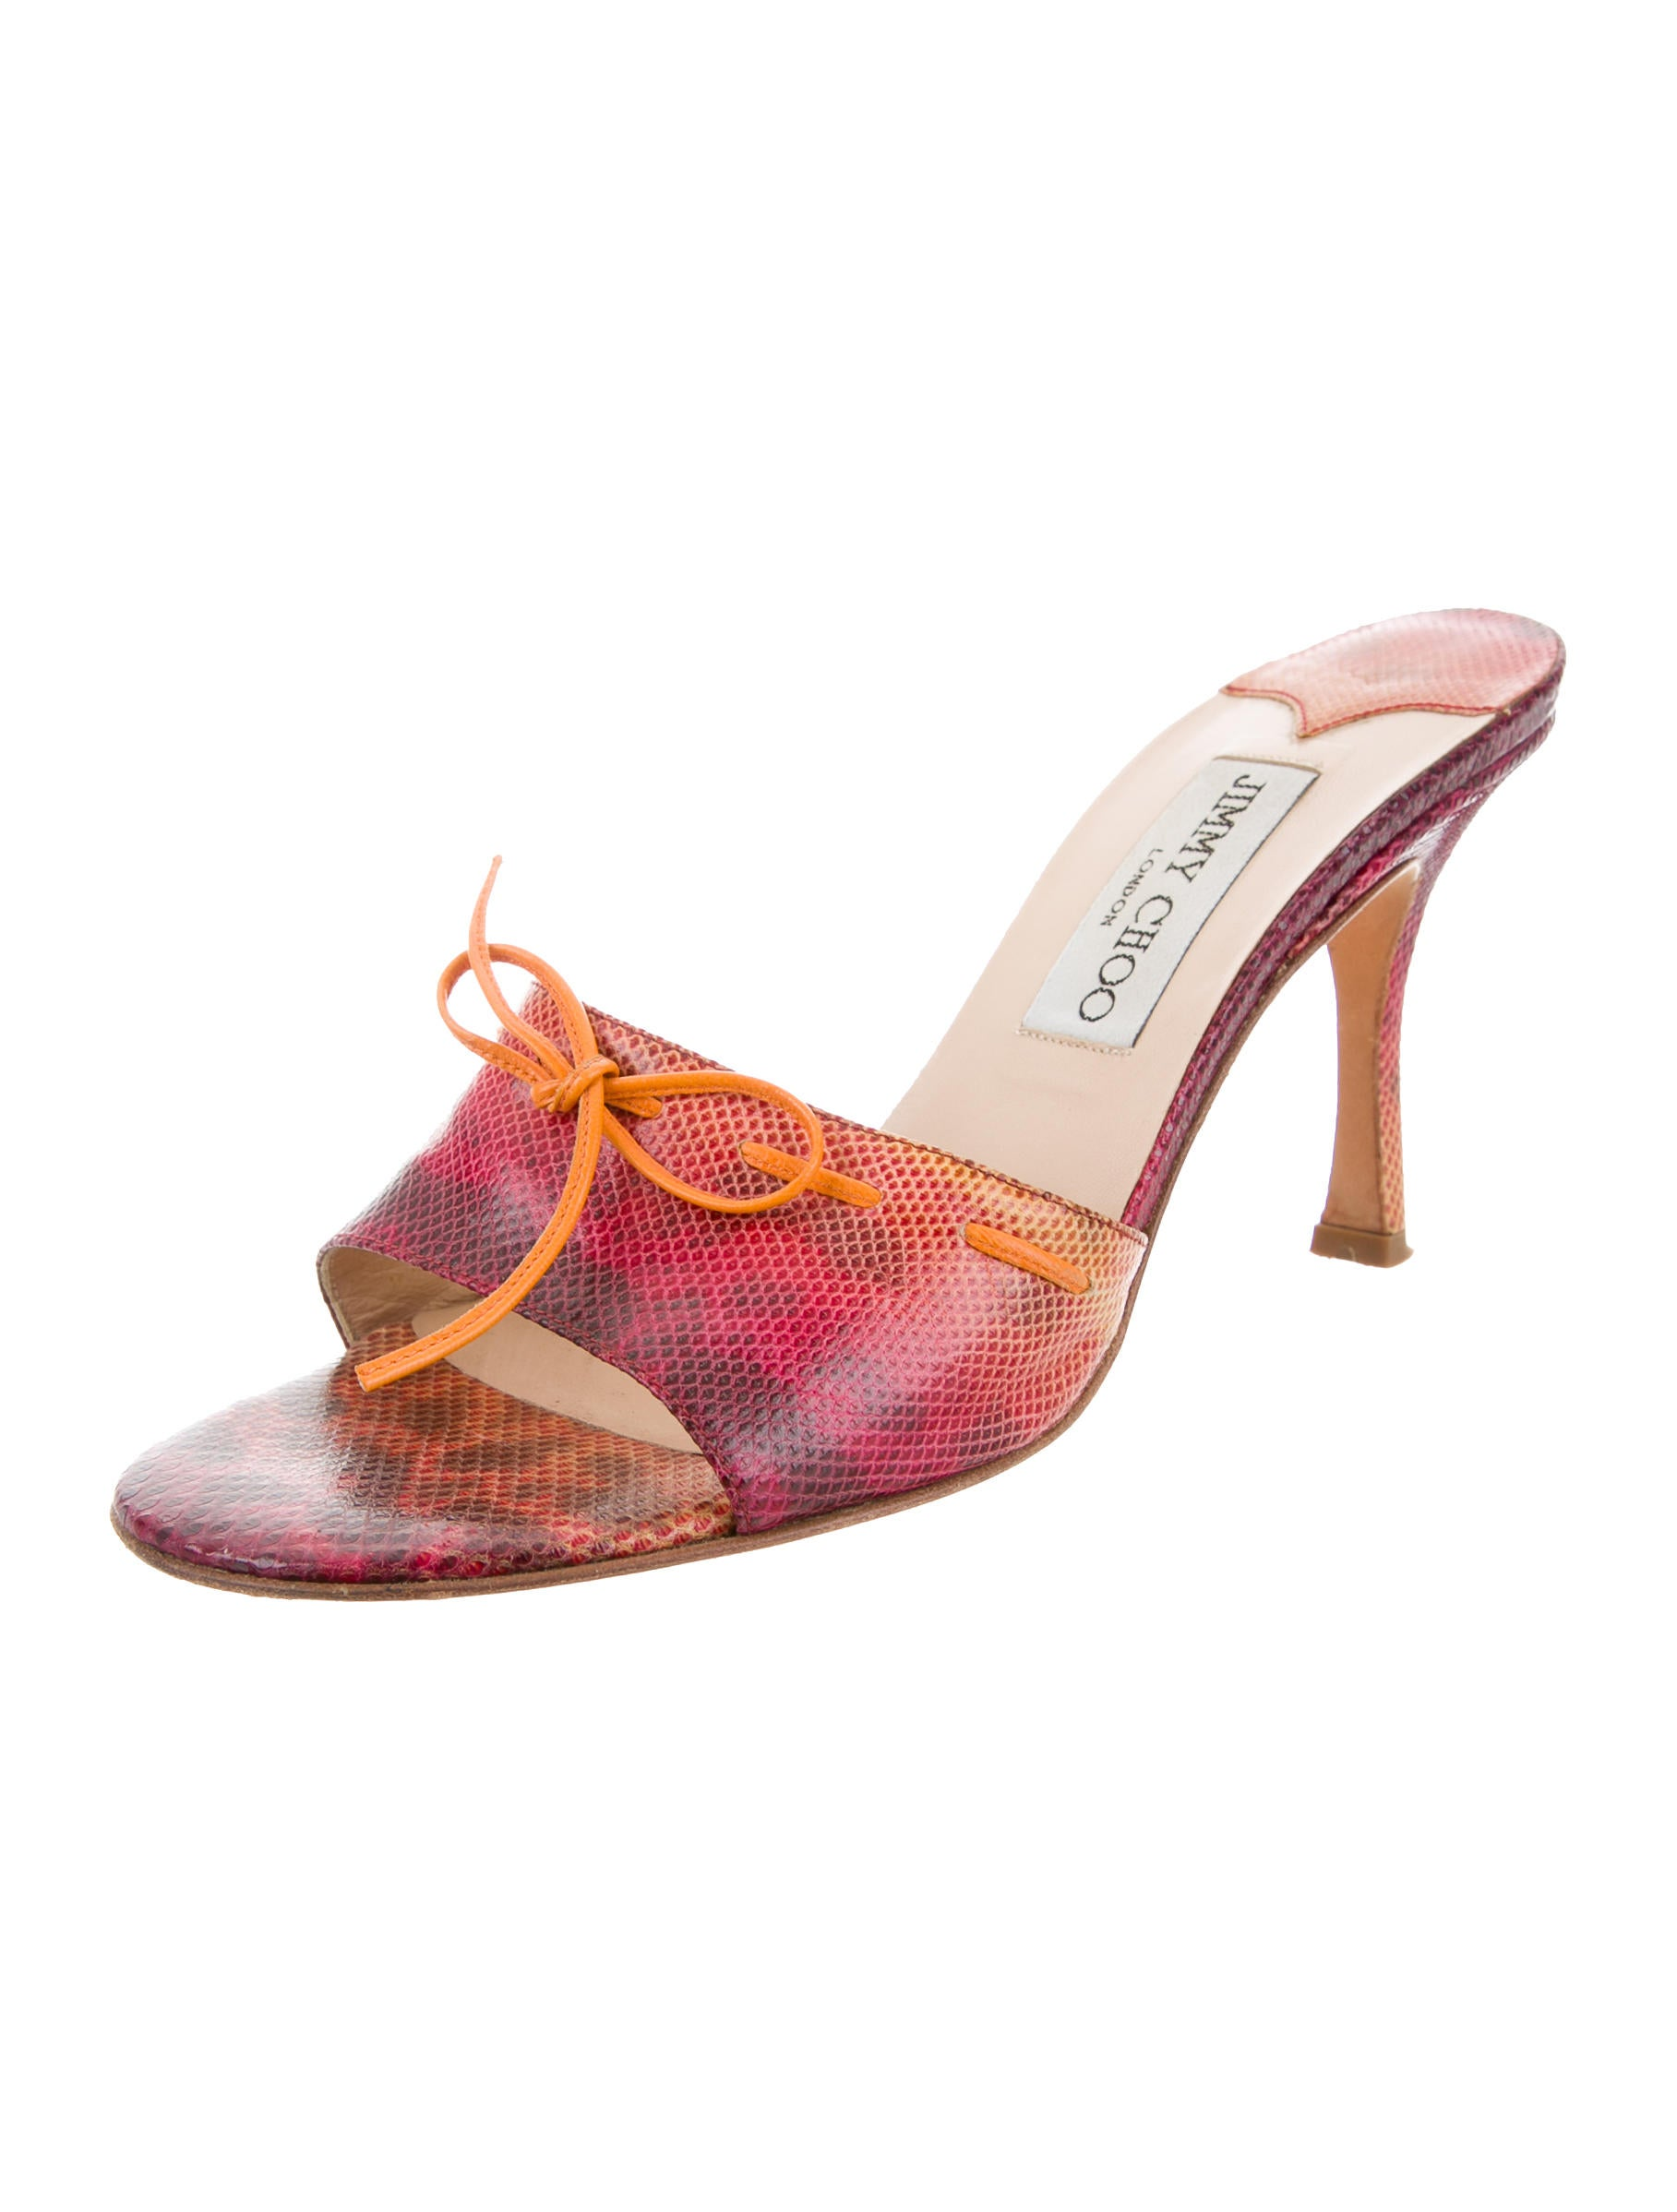 choice for sale Jimmy Choo Lizard Lace-Up Sandals buy cheap recommend how much for sale sale outlet store TlgJoq